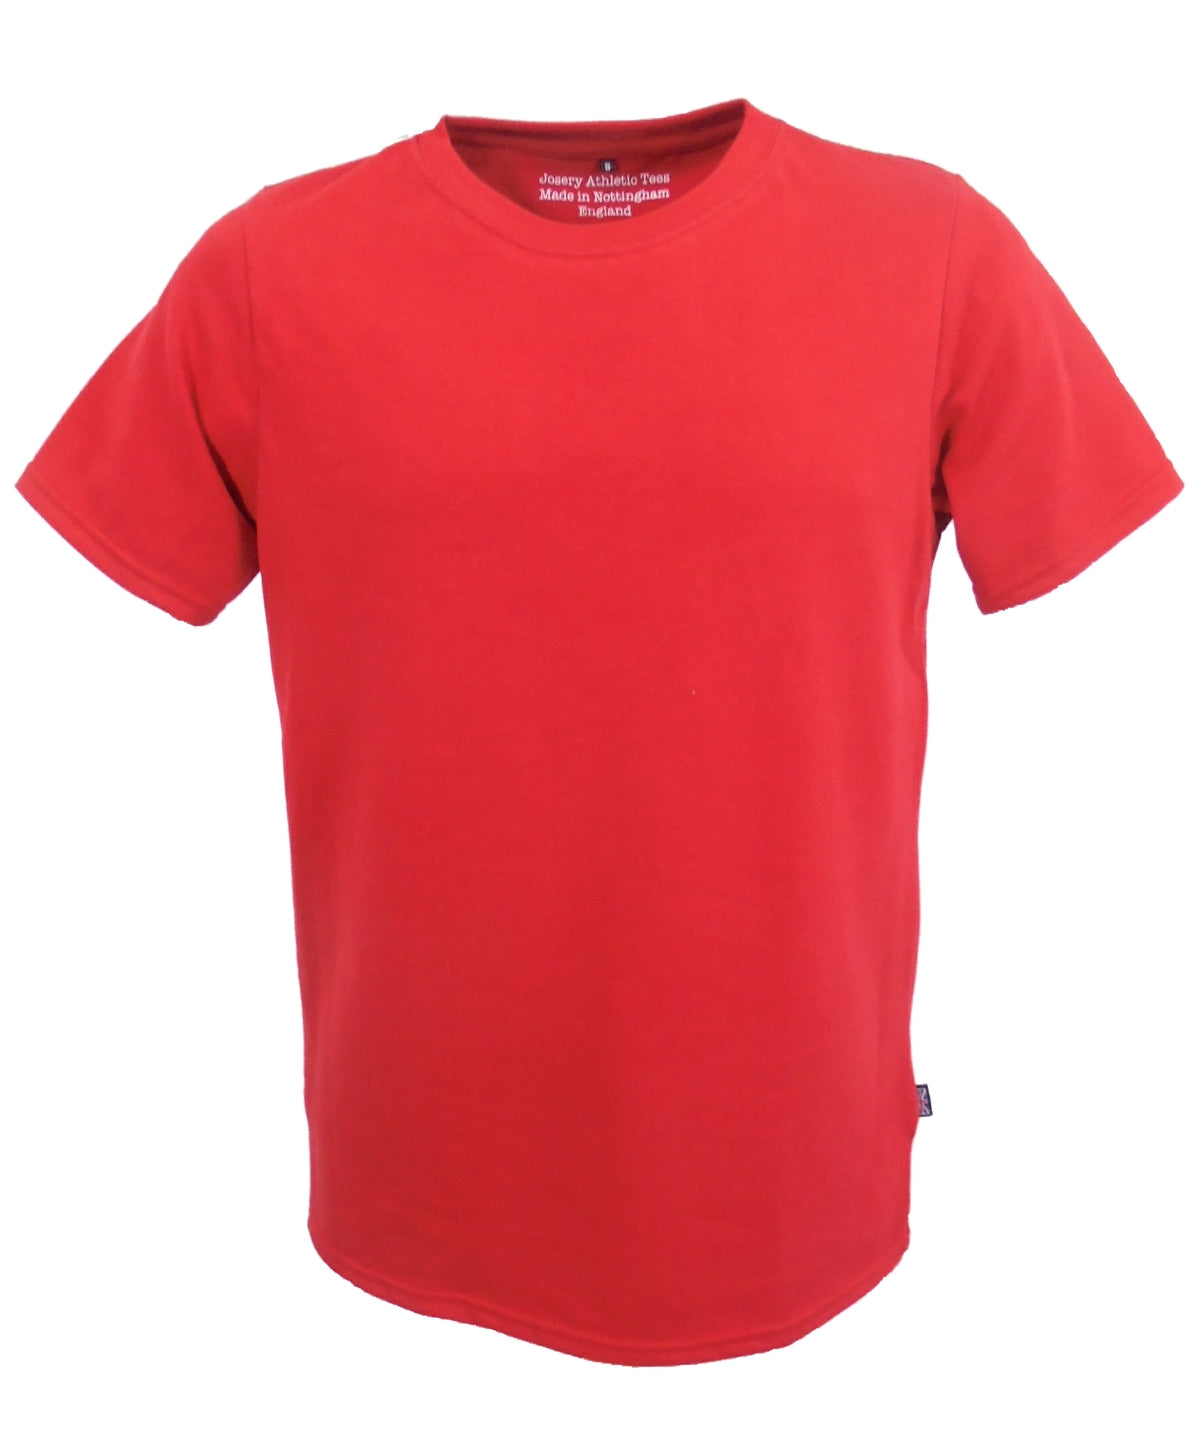 Red T-Shirt, athletic collection, made in England